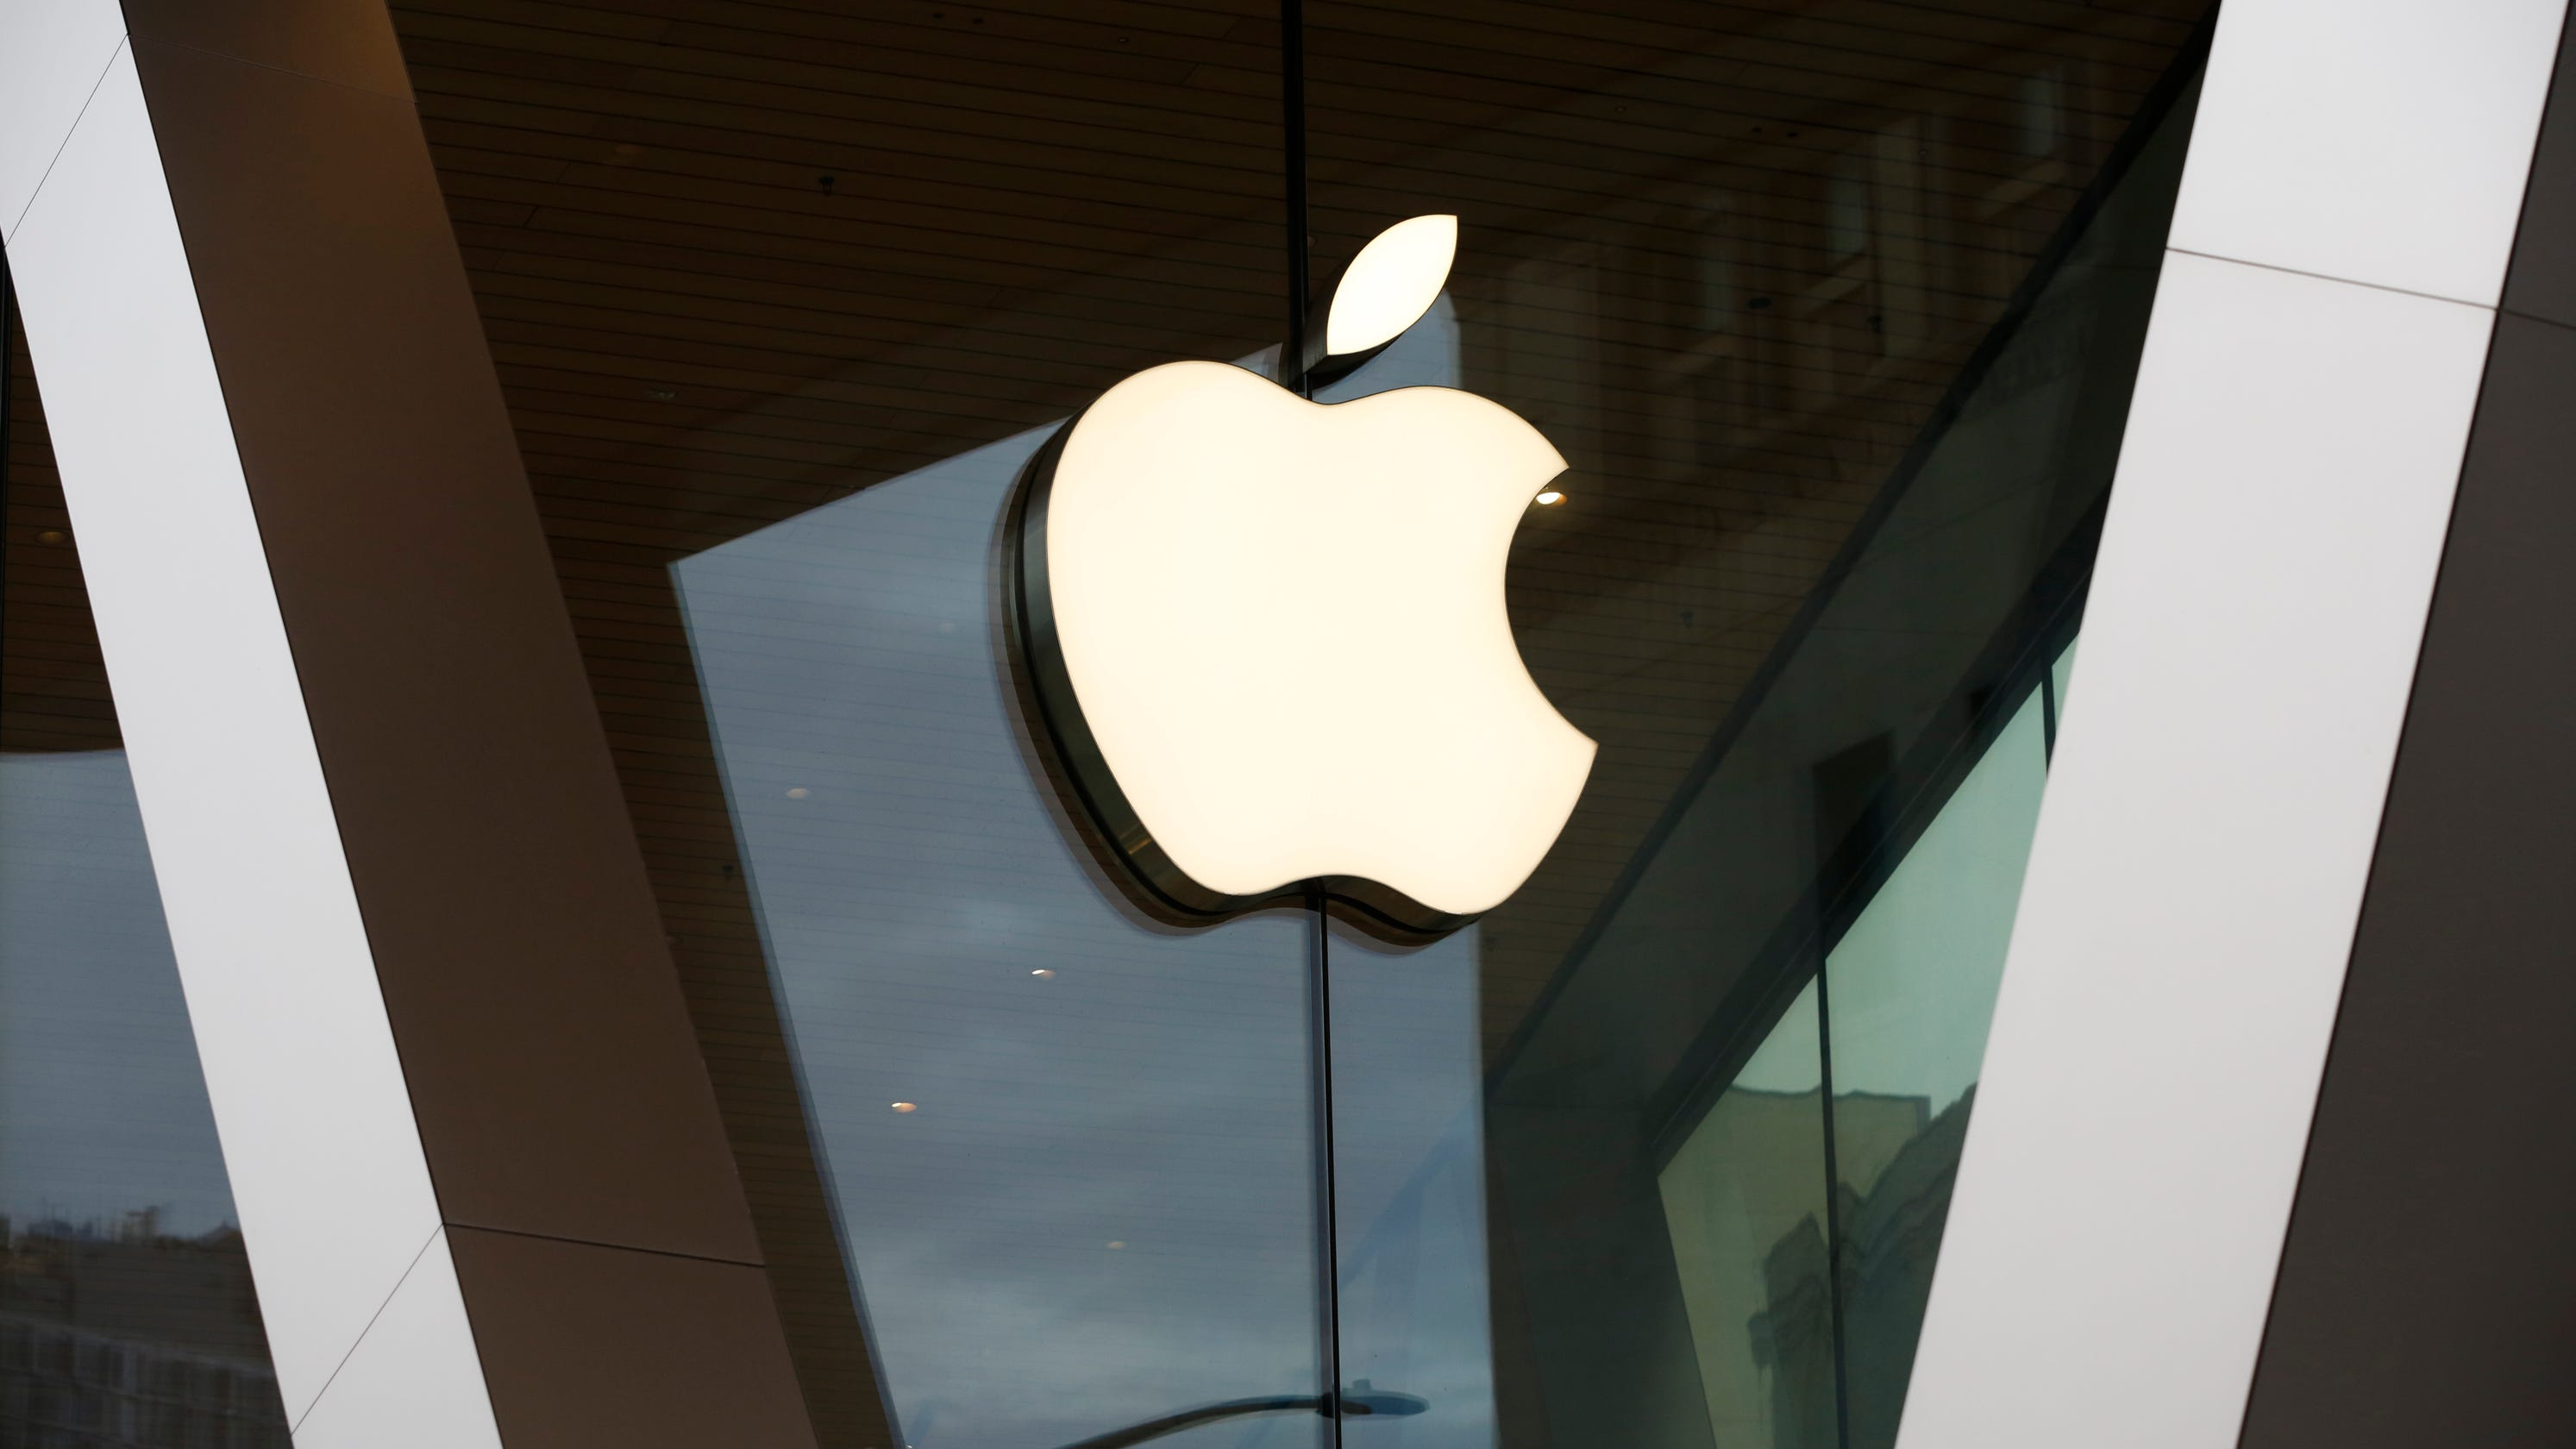 Apple's head of diversity and inclusion has left the company